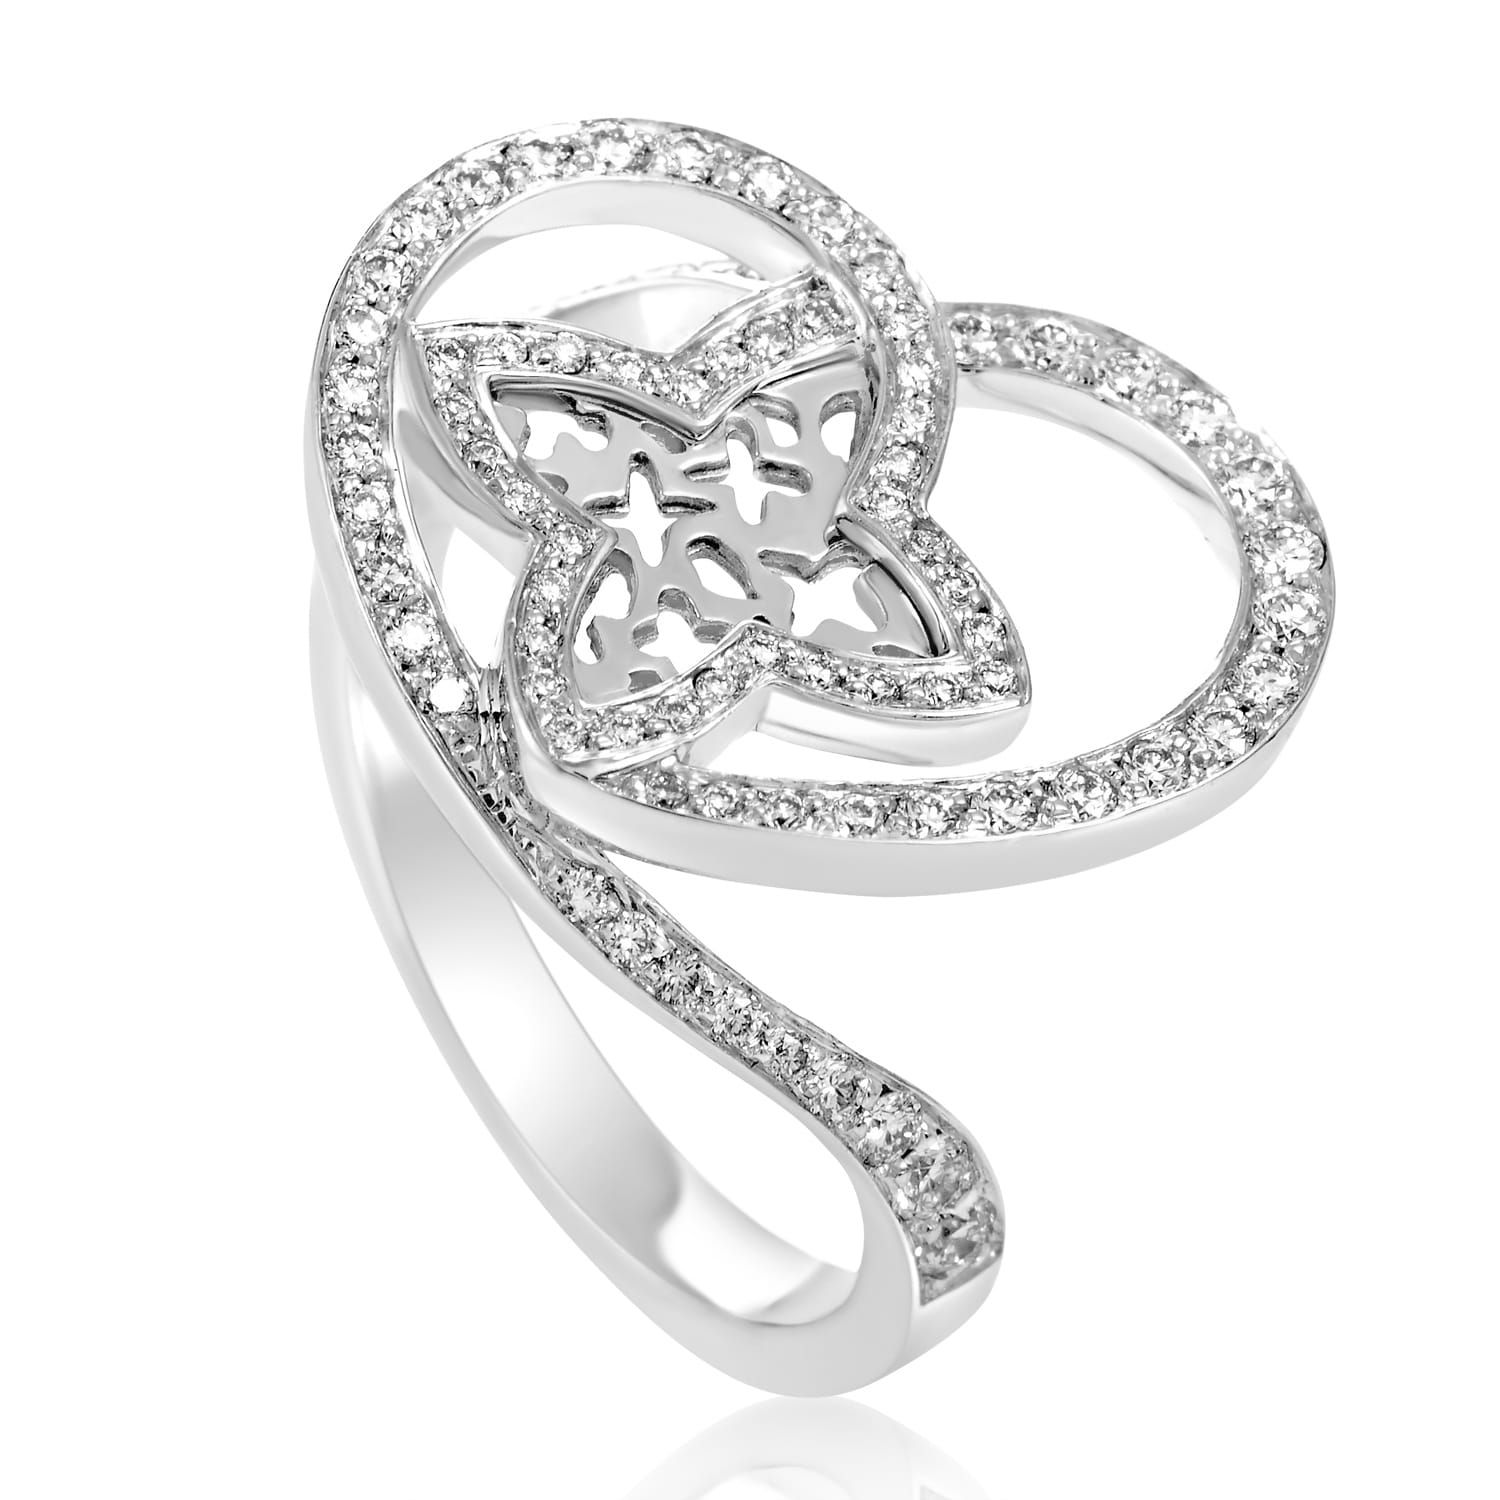 0144a0c1cb9 Shop Louis Vuitton Idylle Blossom Women s White Gold Diamond Heart Ring -  Free Shipping Today - Overstock - 20360242